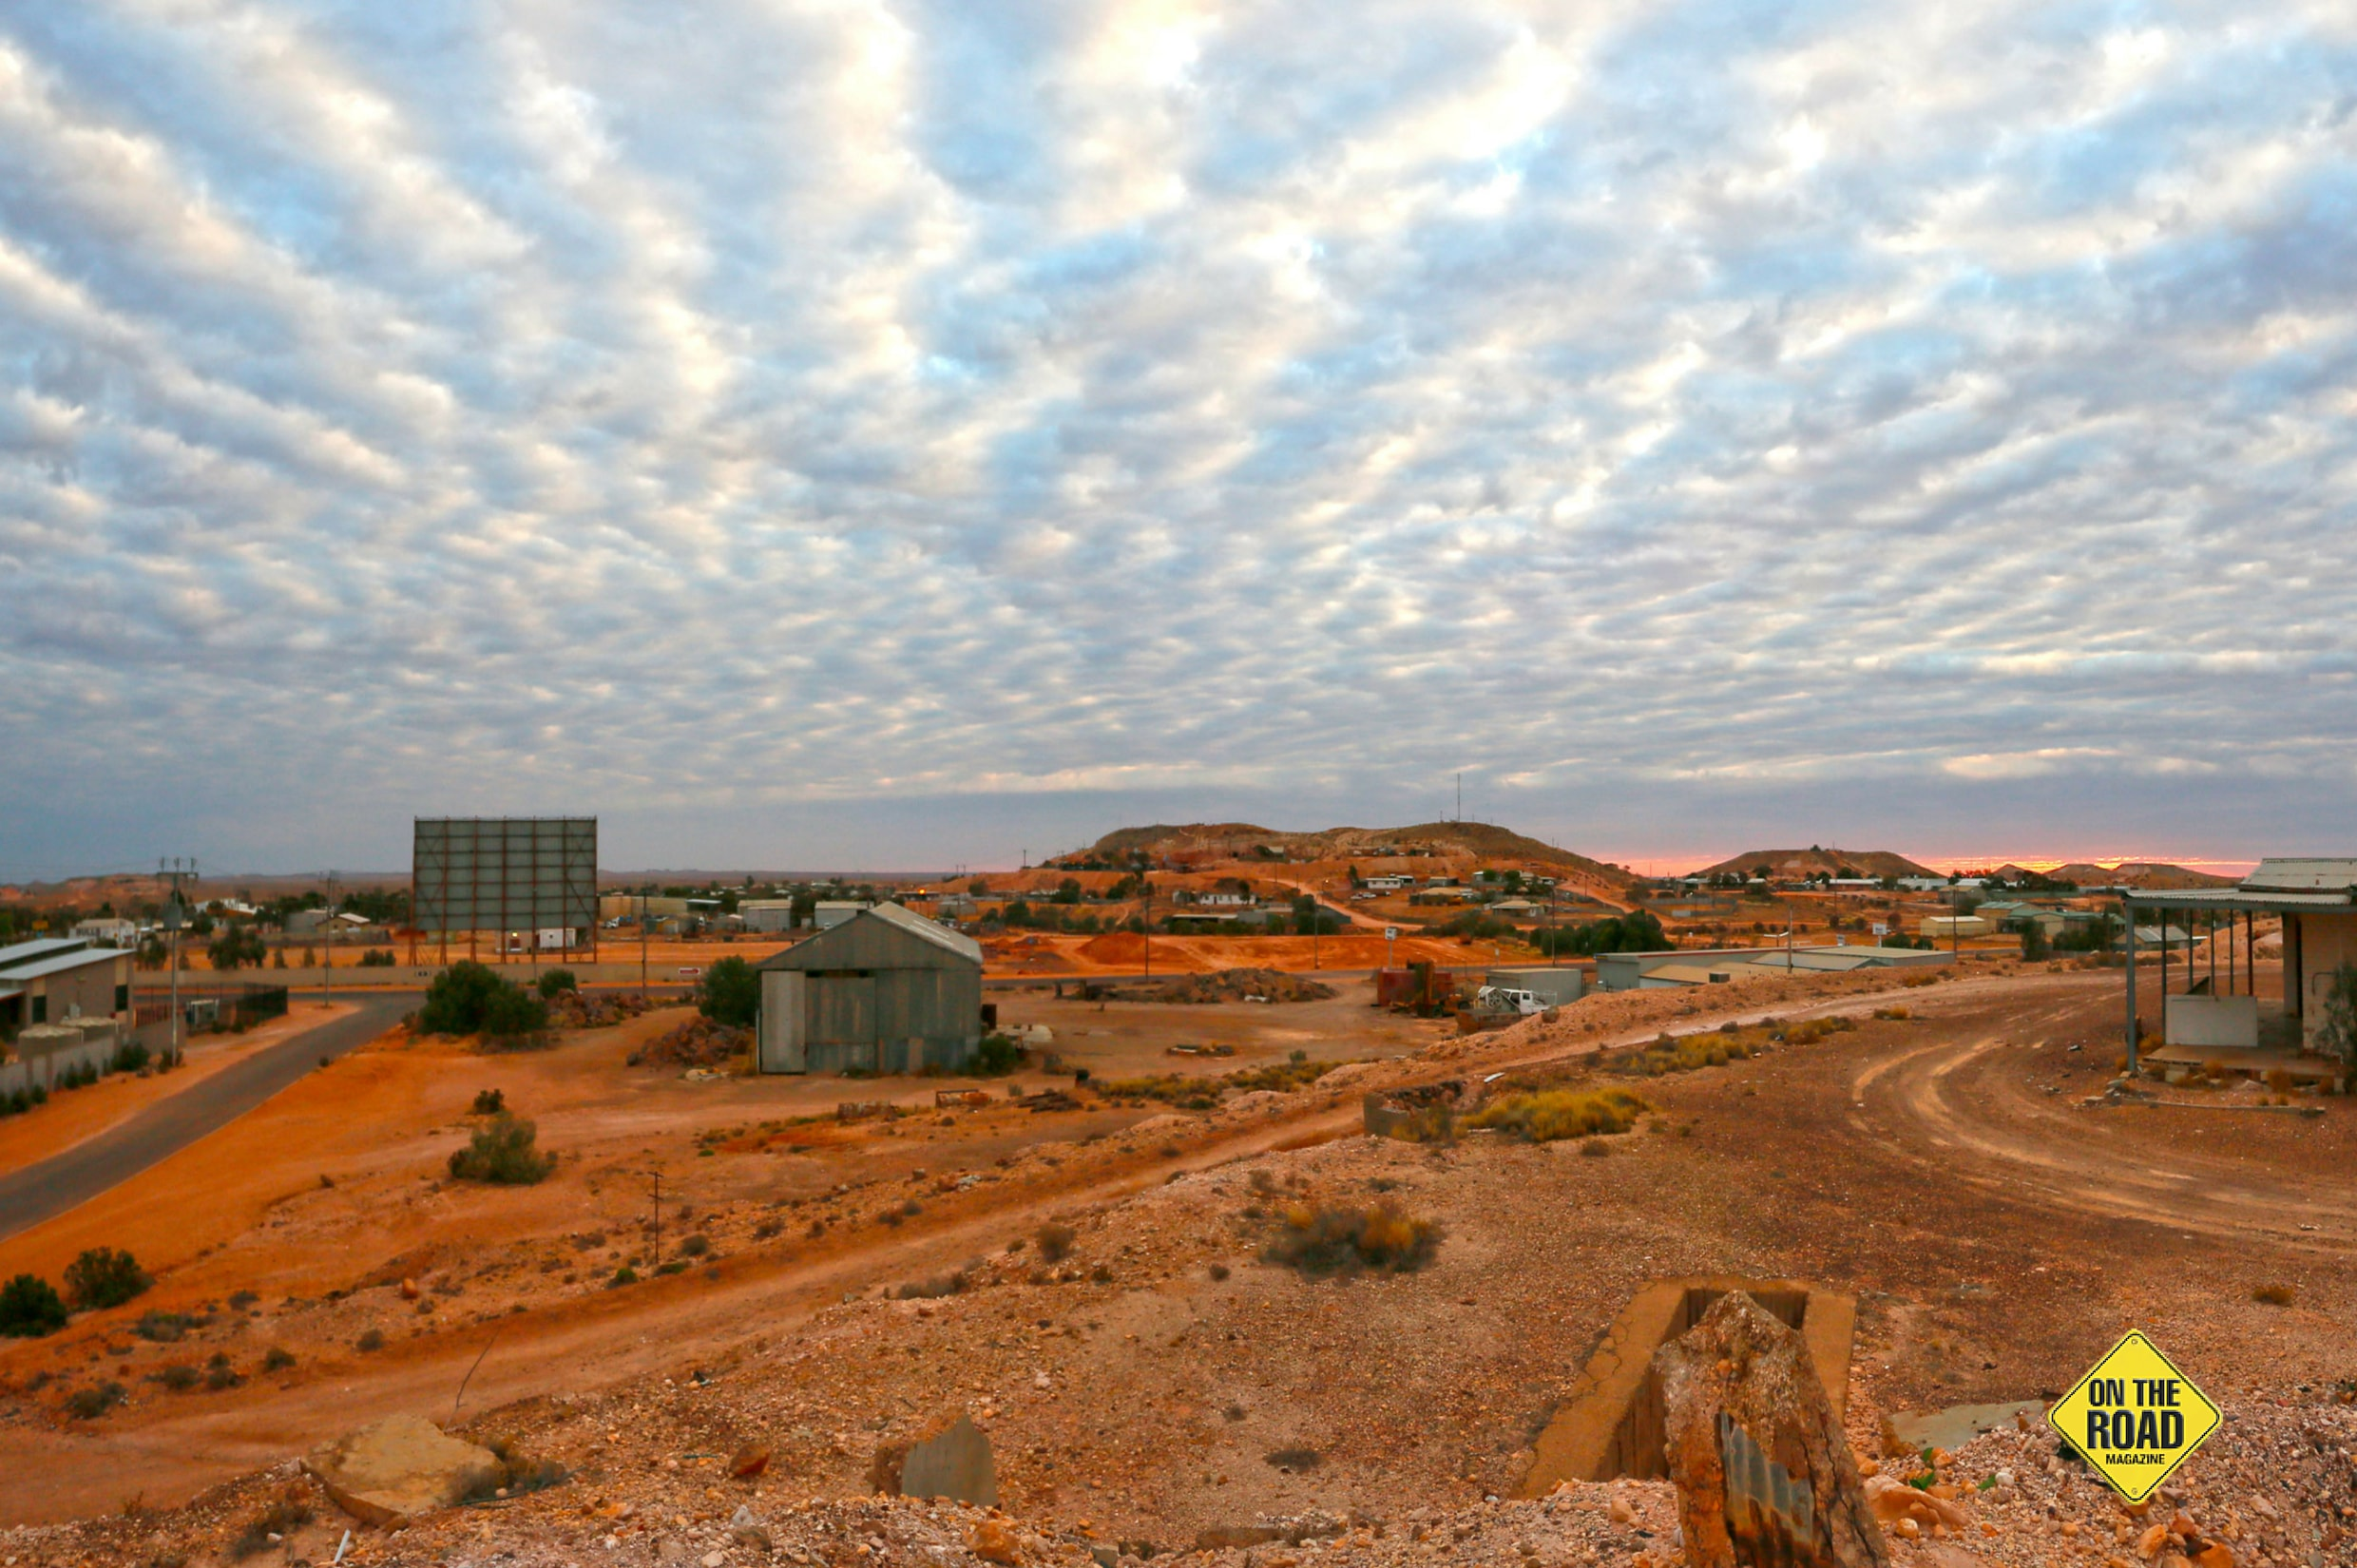 A Coober Pedy landscape at sunrise